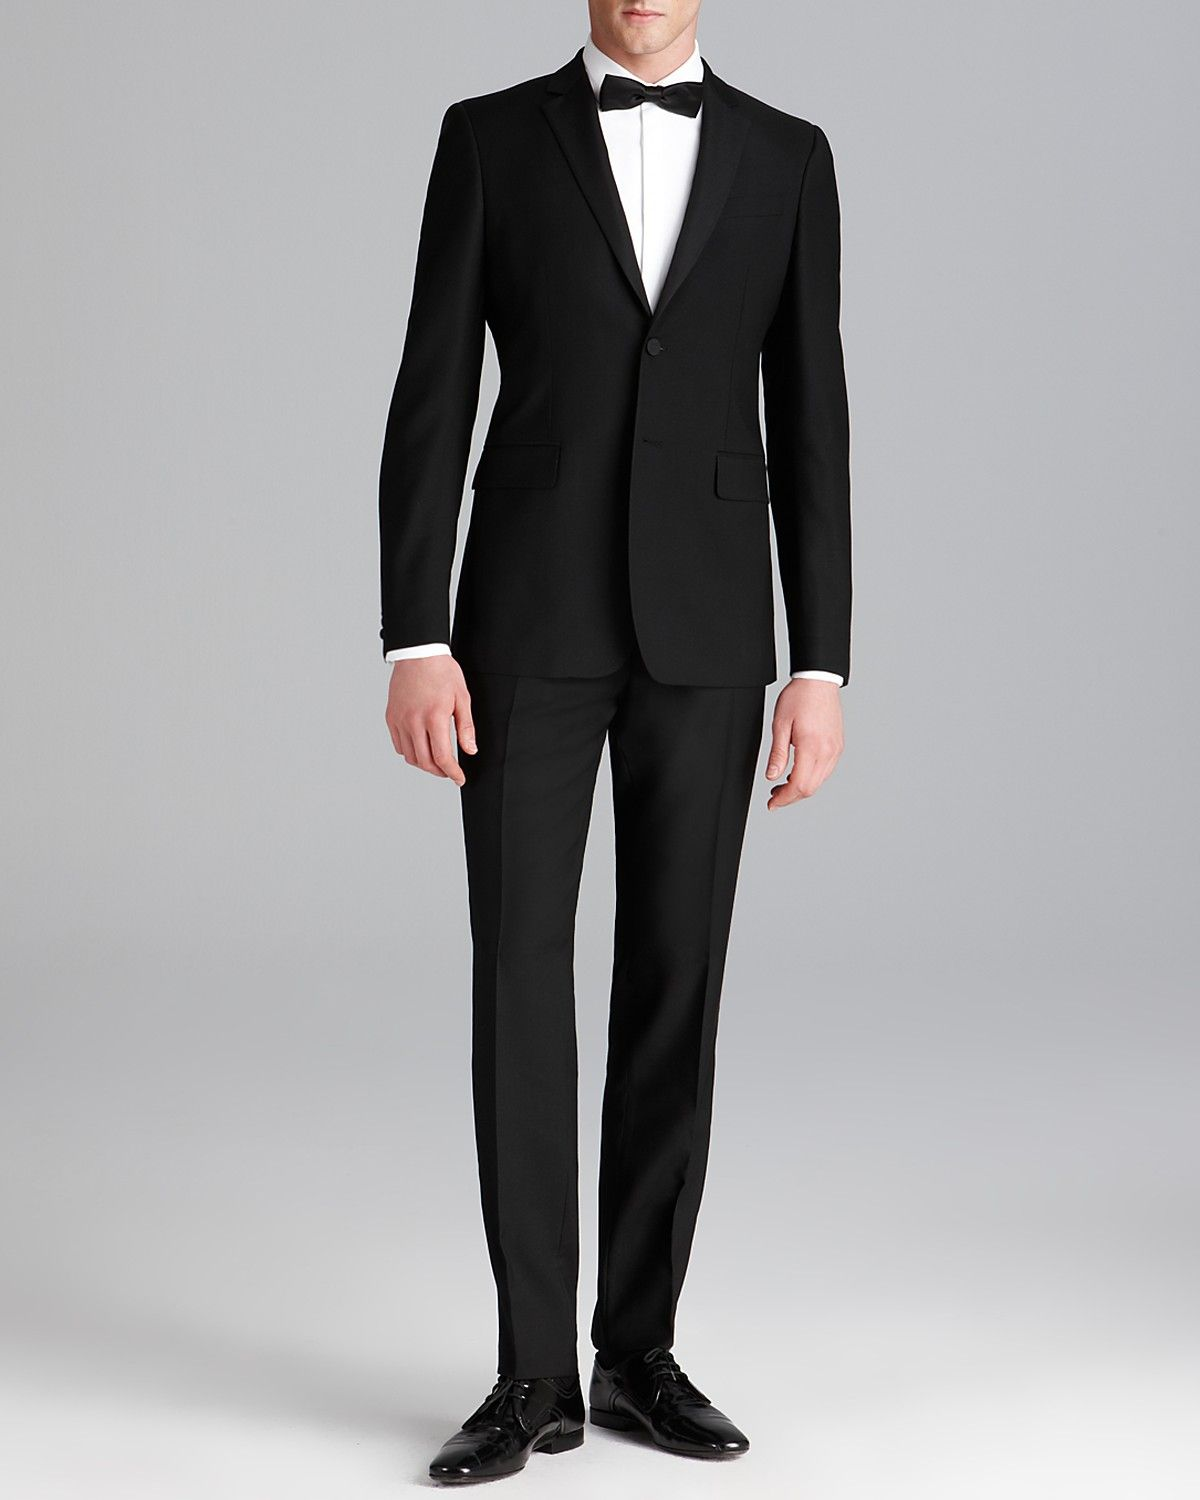 a4449083fee0 Burberry London Millbank Tuxedo Suit - Regular Fit | Bloomingdale's ...